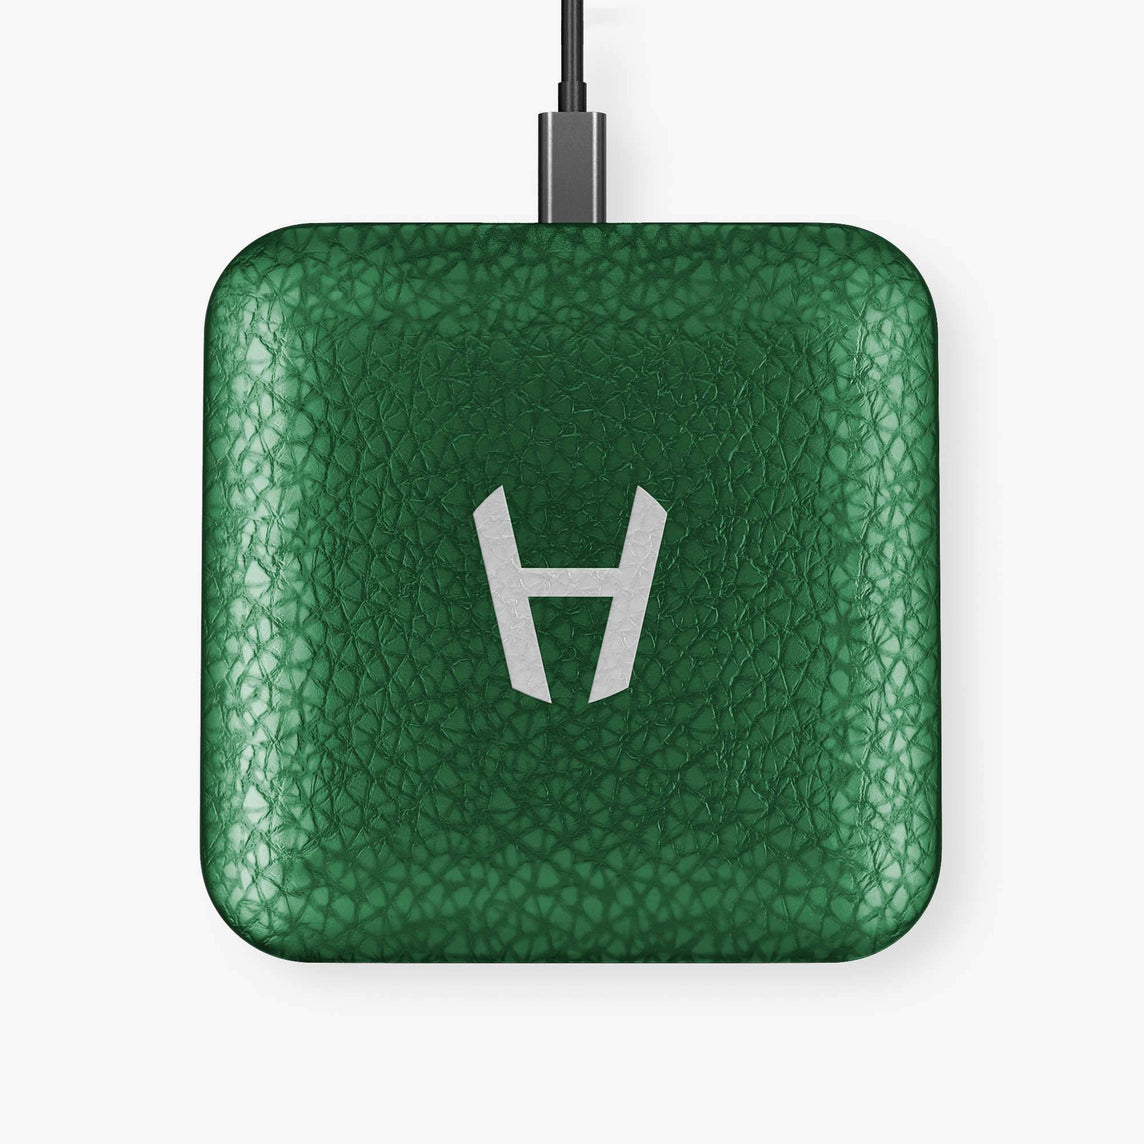 Hadoro Wireless Charging Pad Calfskin | Green - Stainless Steel without-personalization